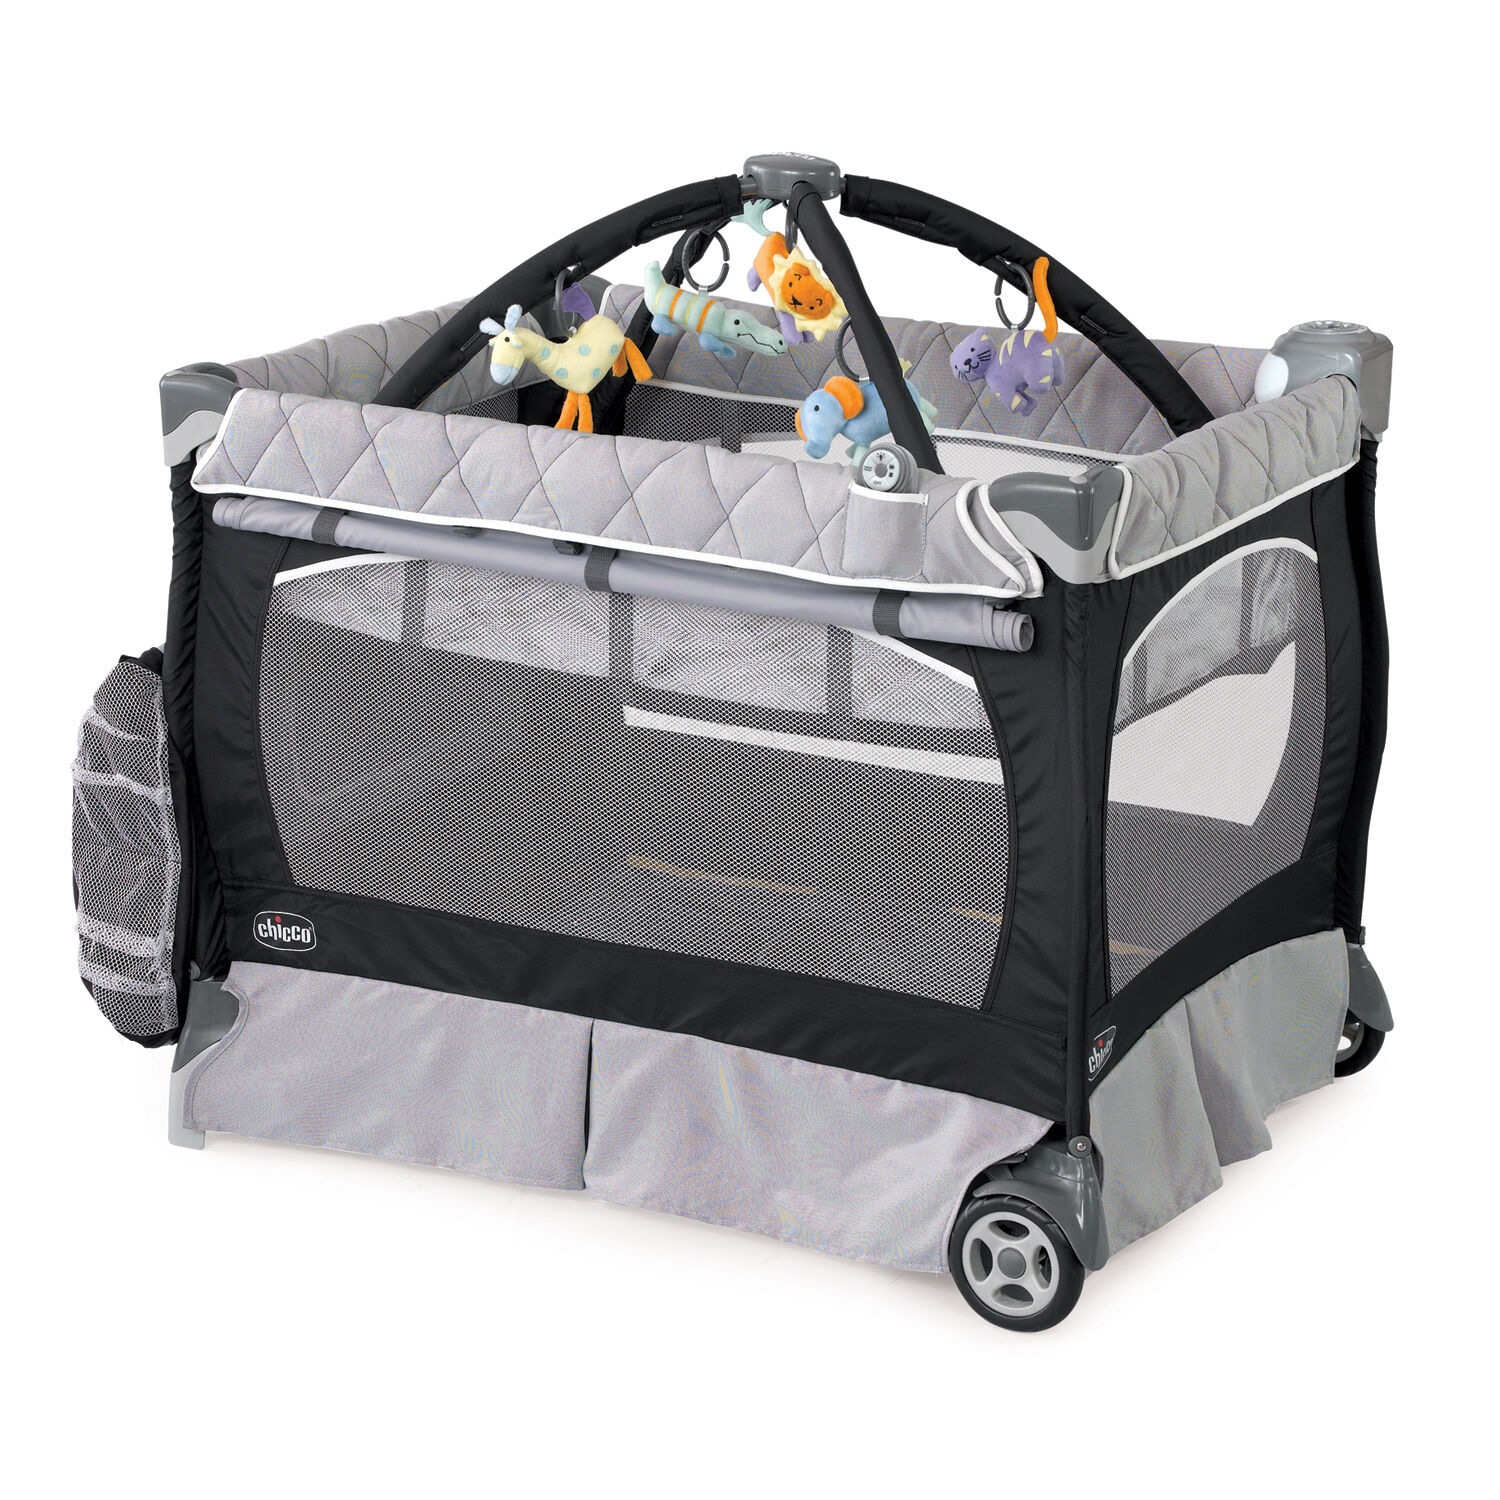 Stroller Bassinet Mattress Chicco Lullaby Lx Playard Romantic